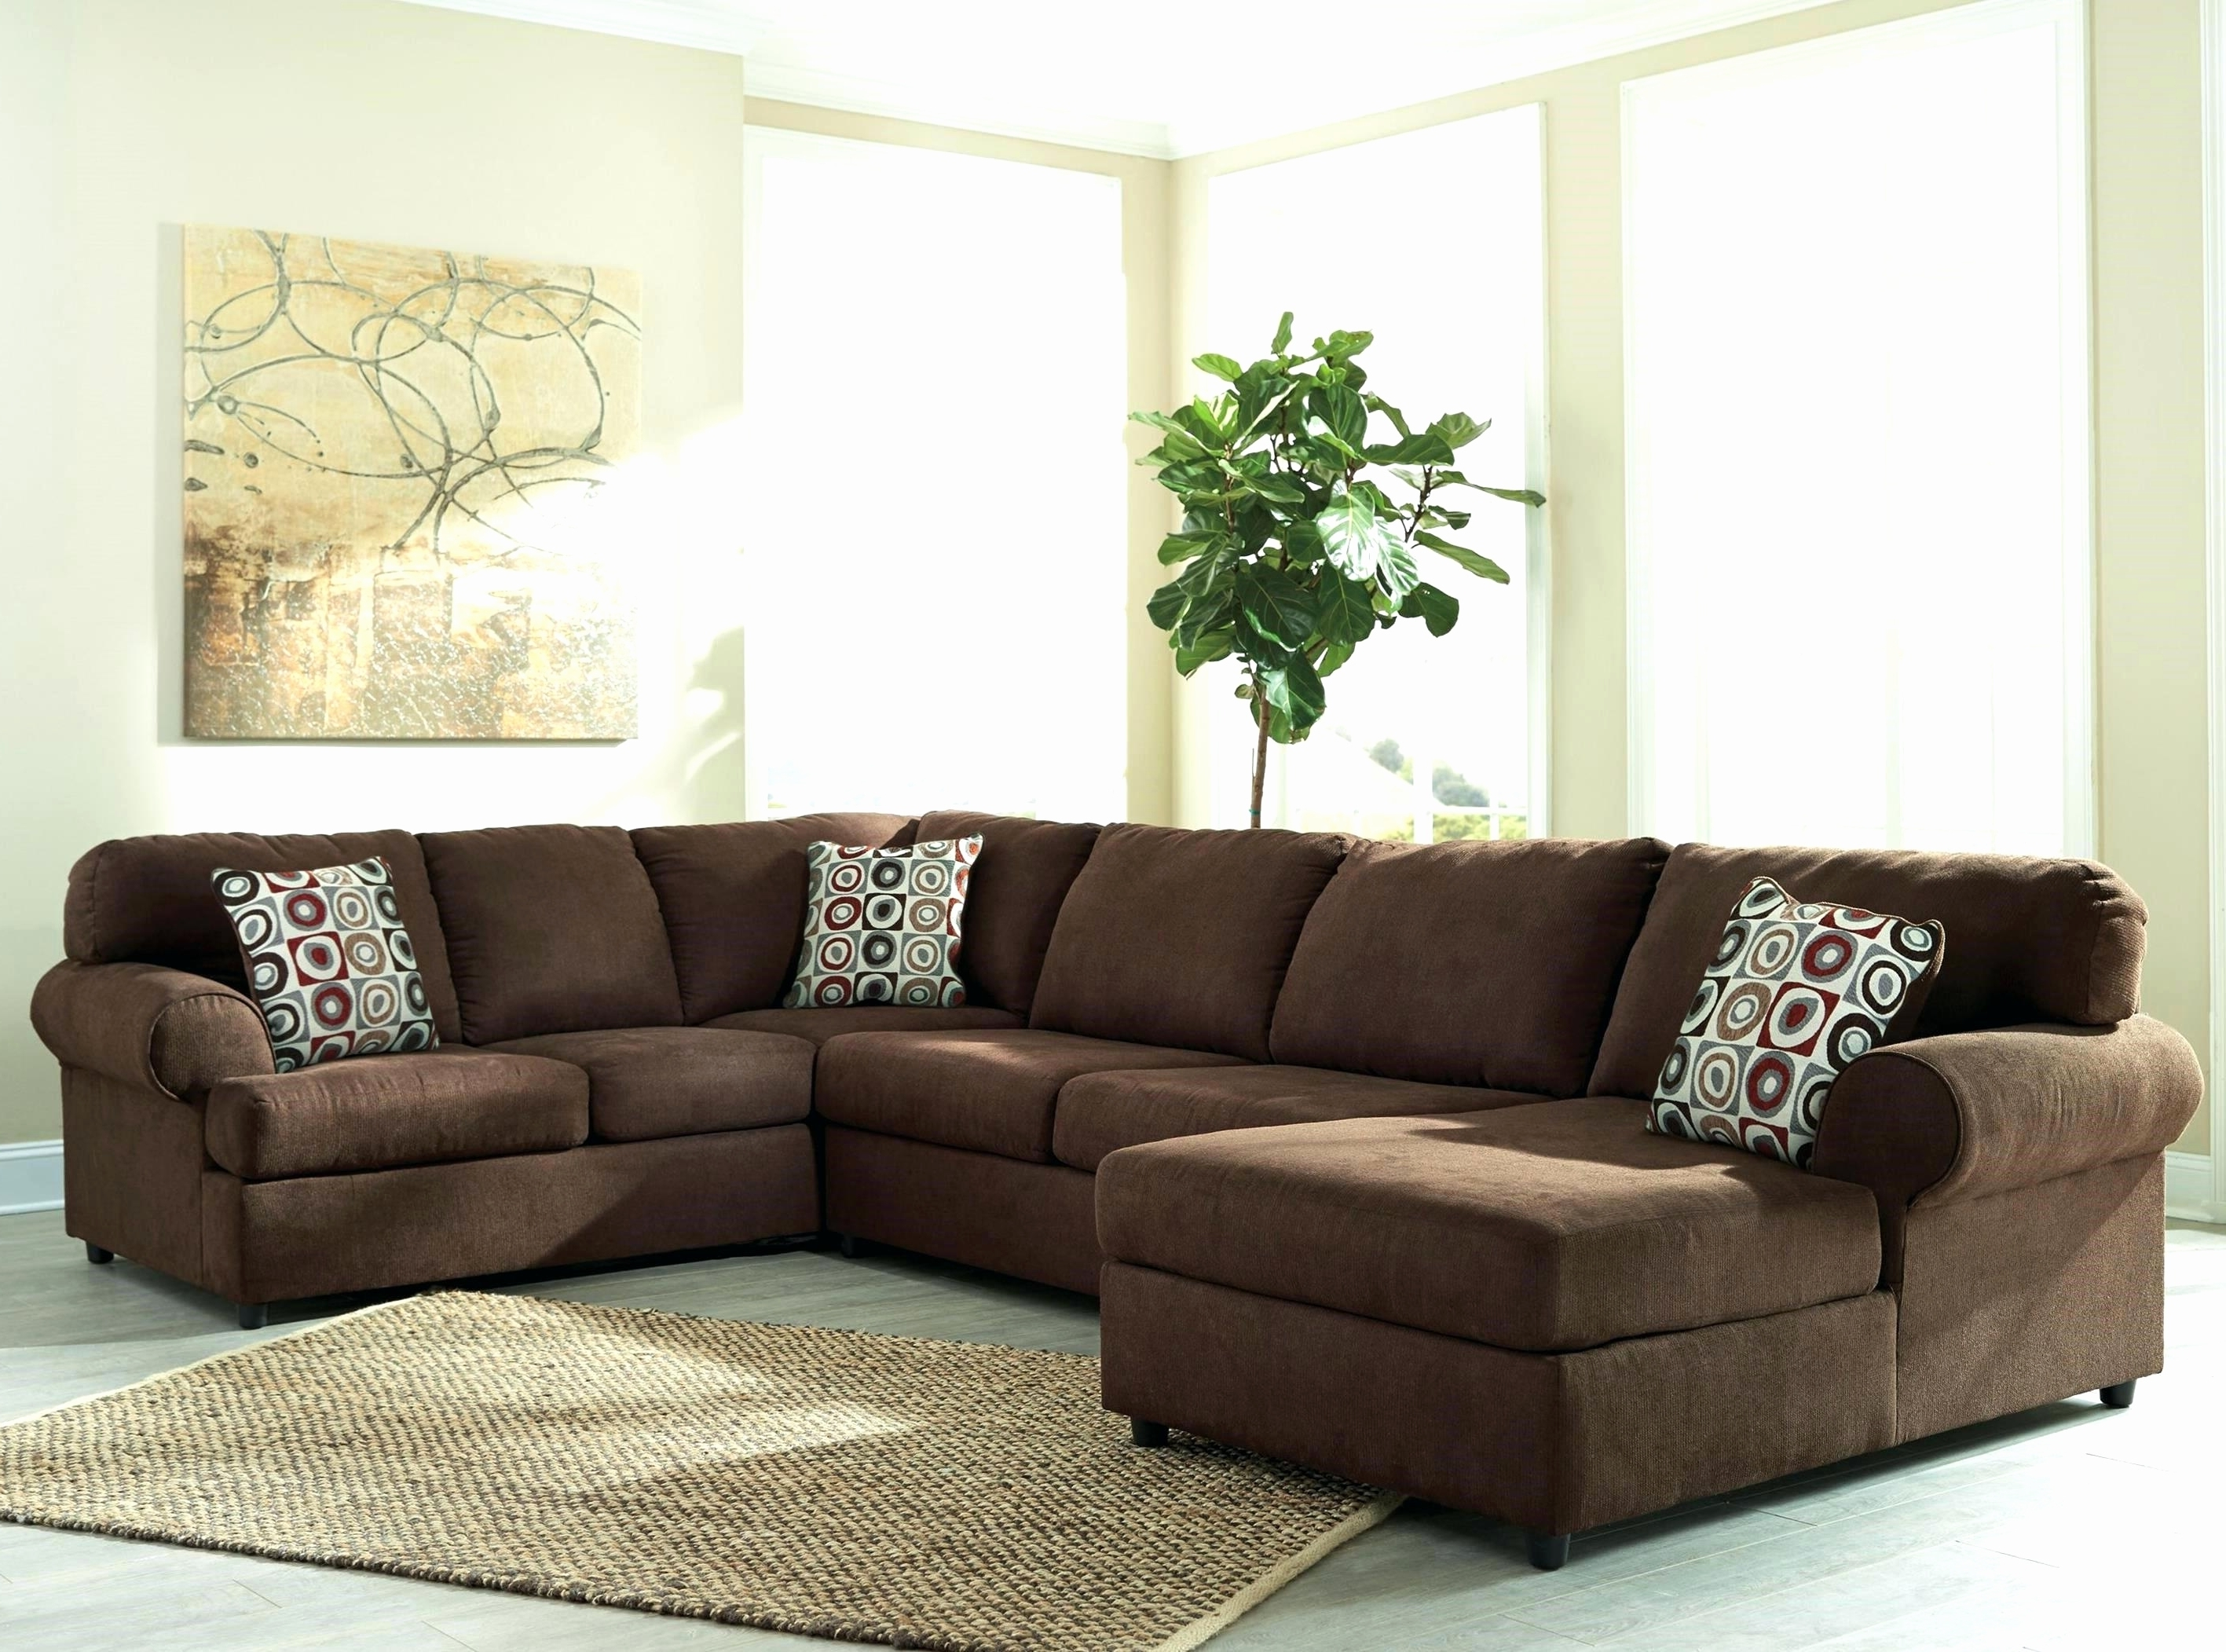 Sectional Sofas At Raymour And Flanigan With Popular Unique Raymour And Flanigan Living Room 2018 – Couches And Sofas Ideas (View 20 of 20)